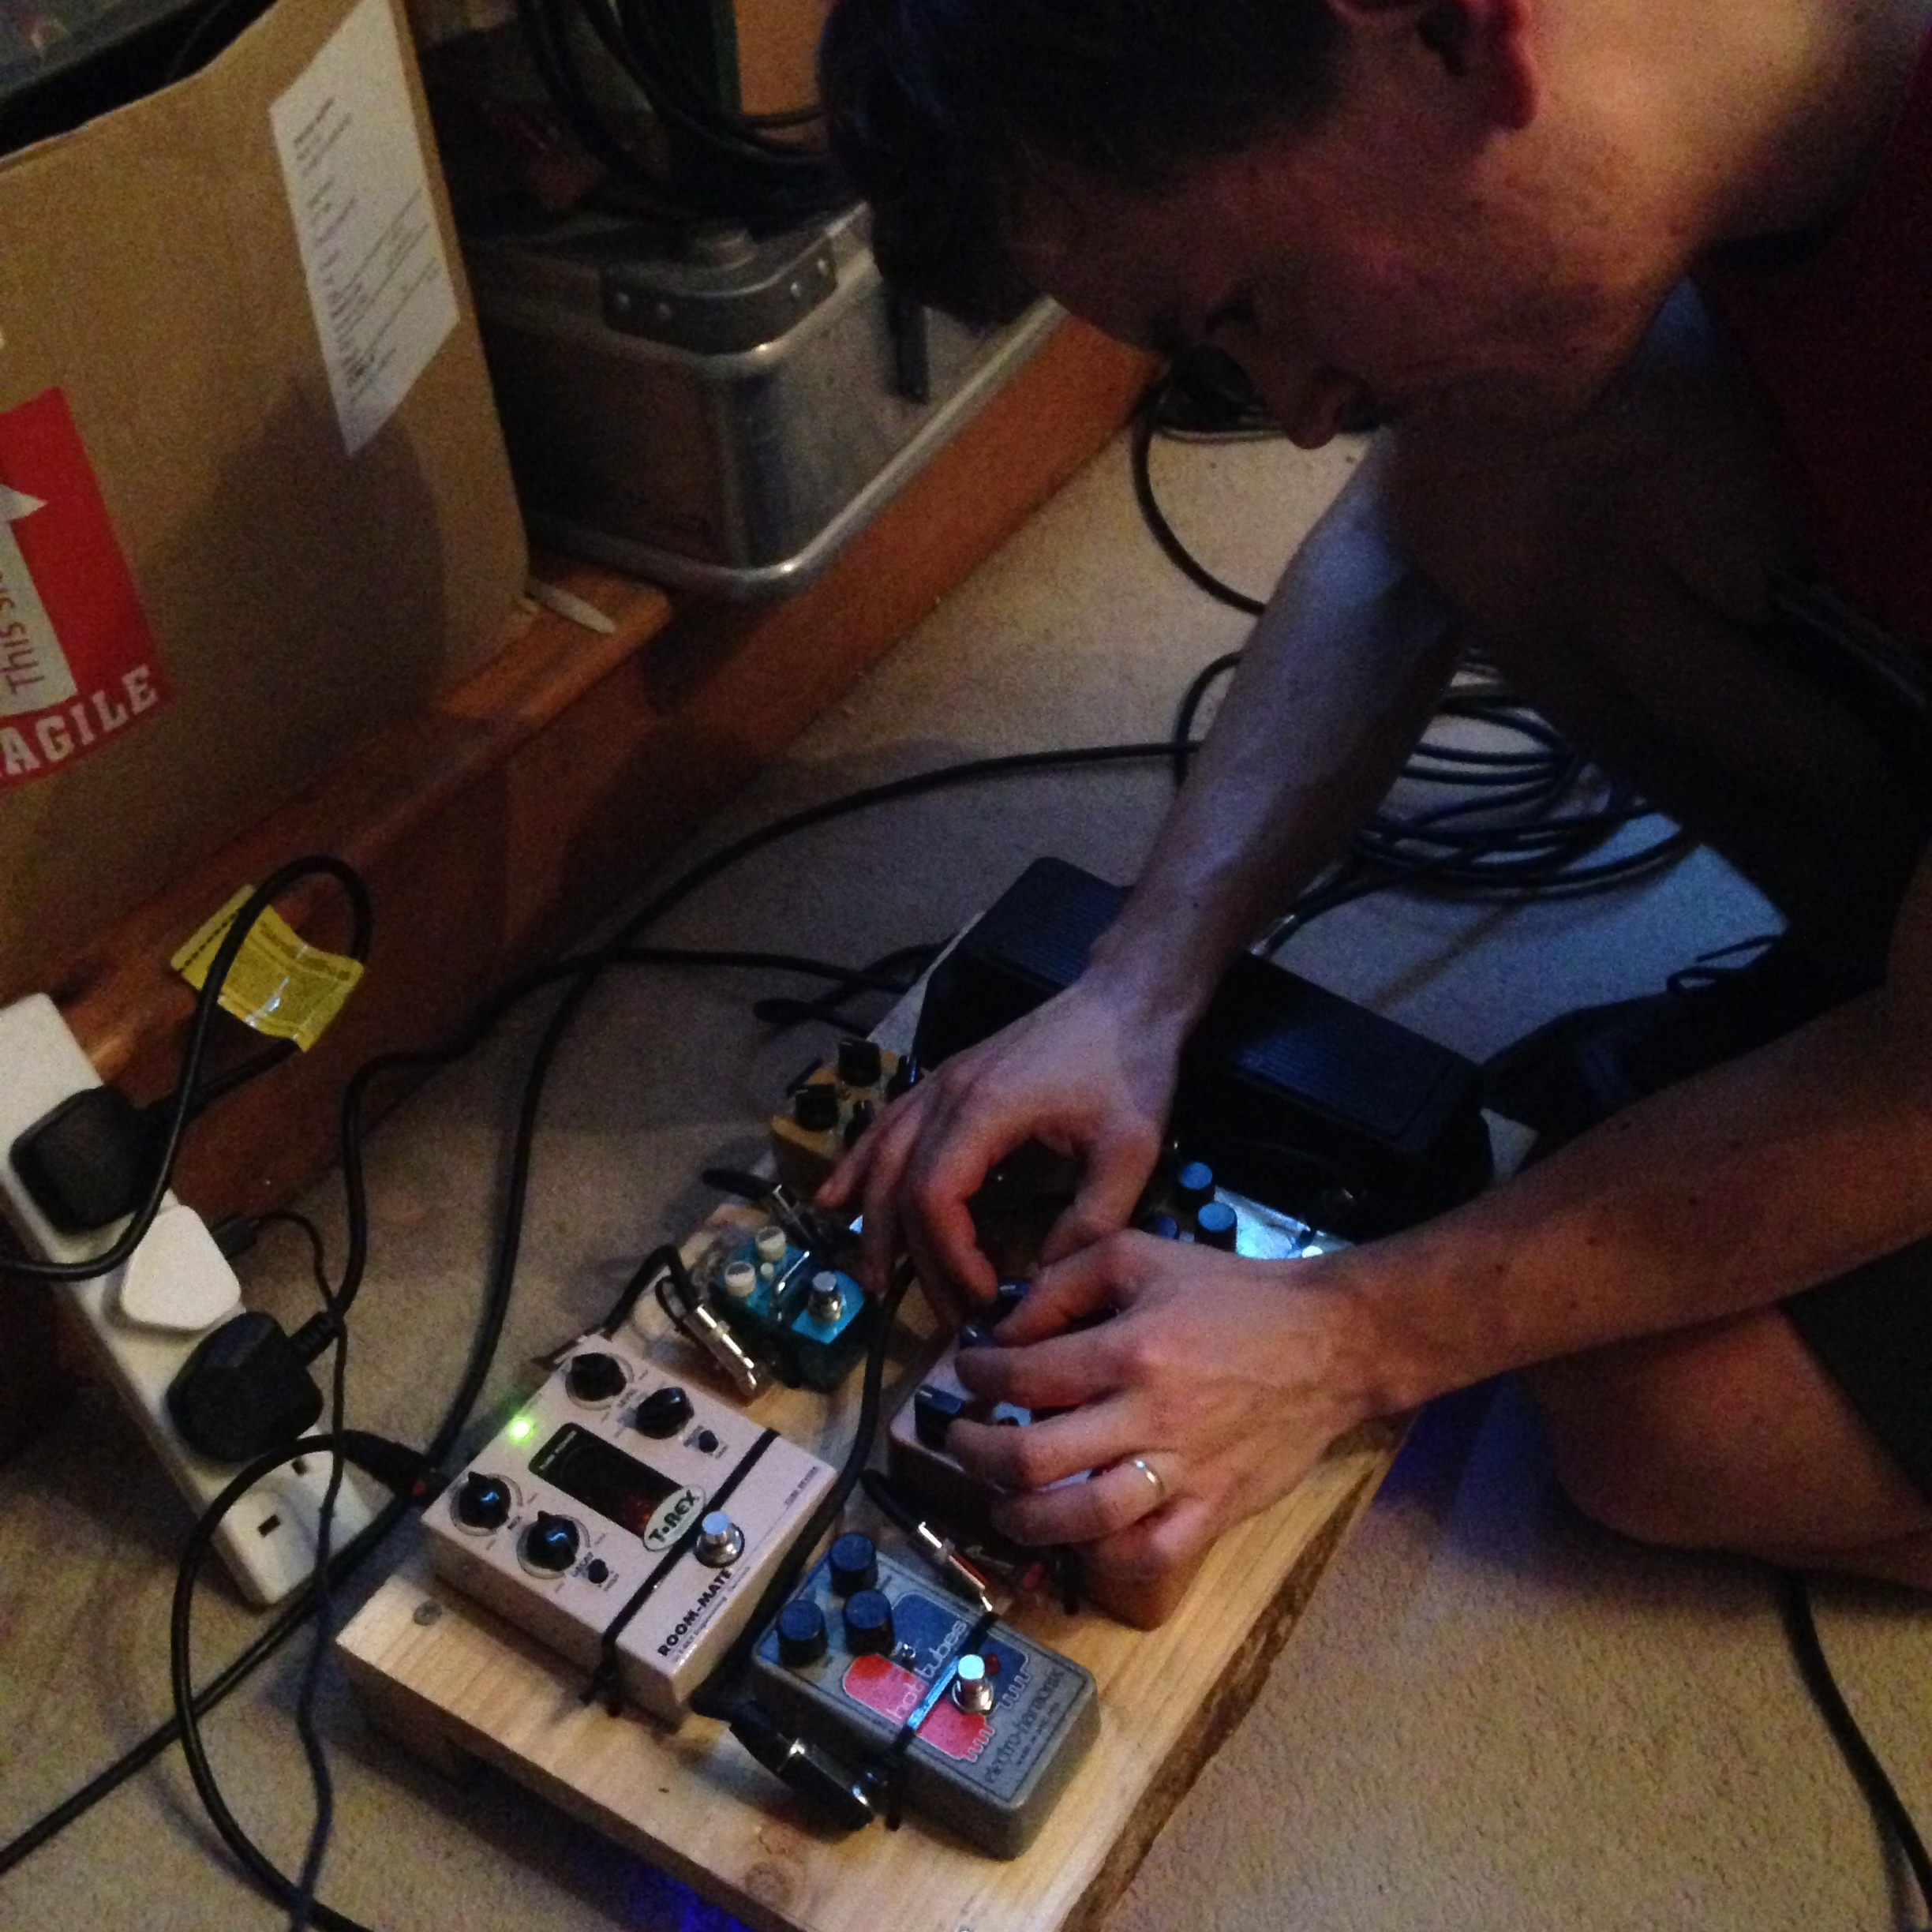 James was able to perform all the pedal actions live when re-tracking